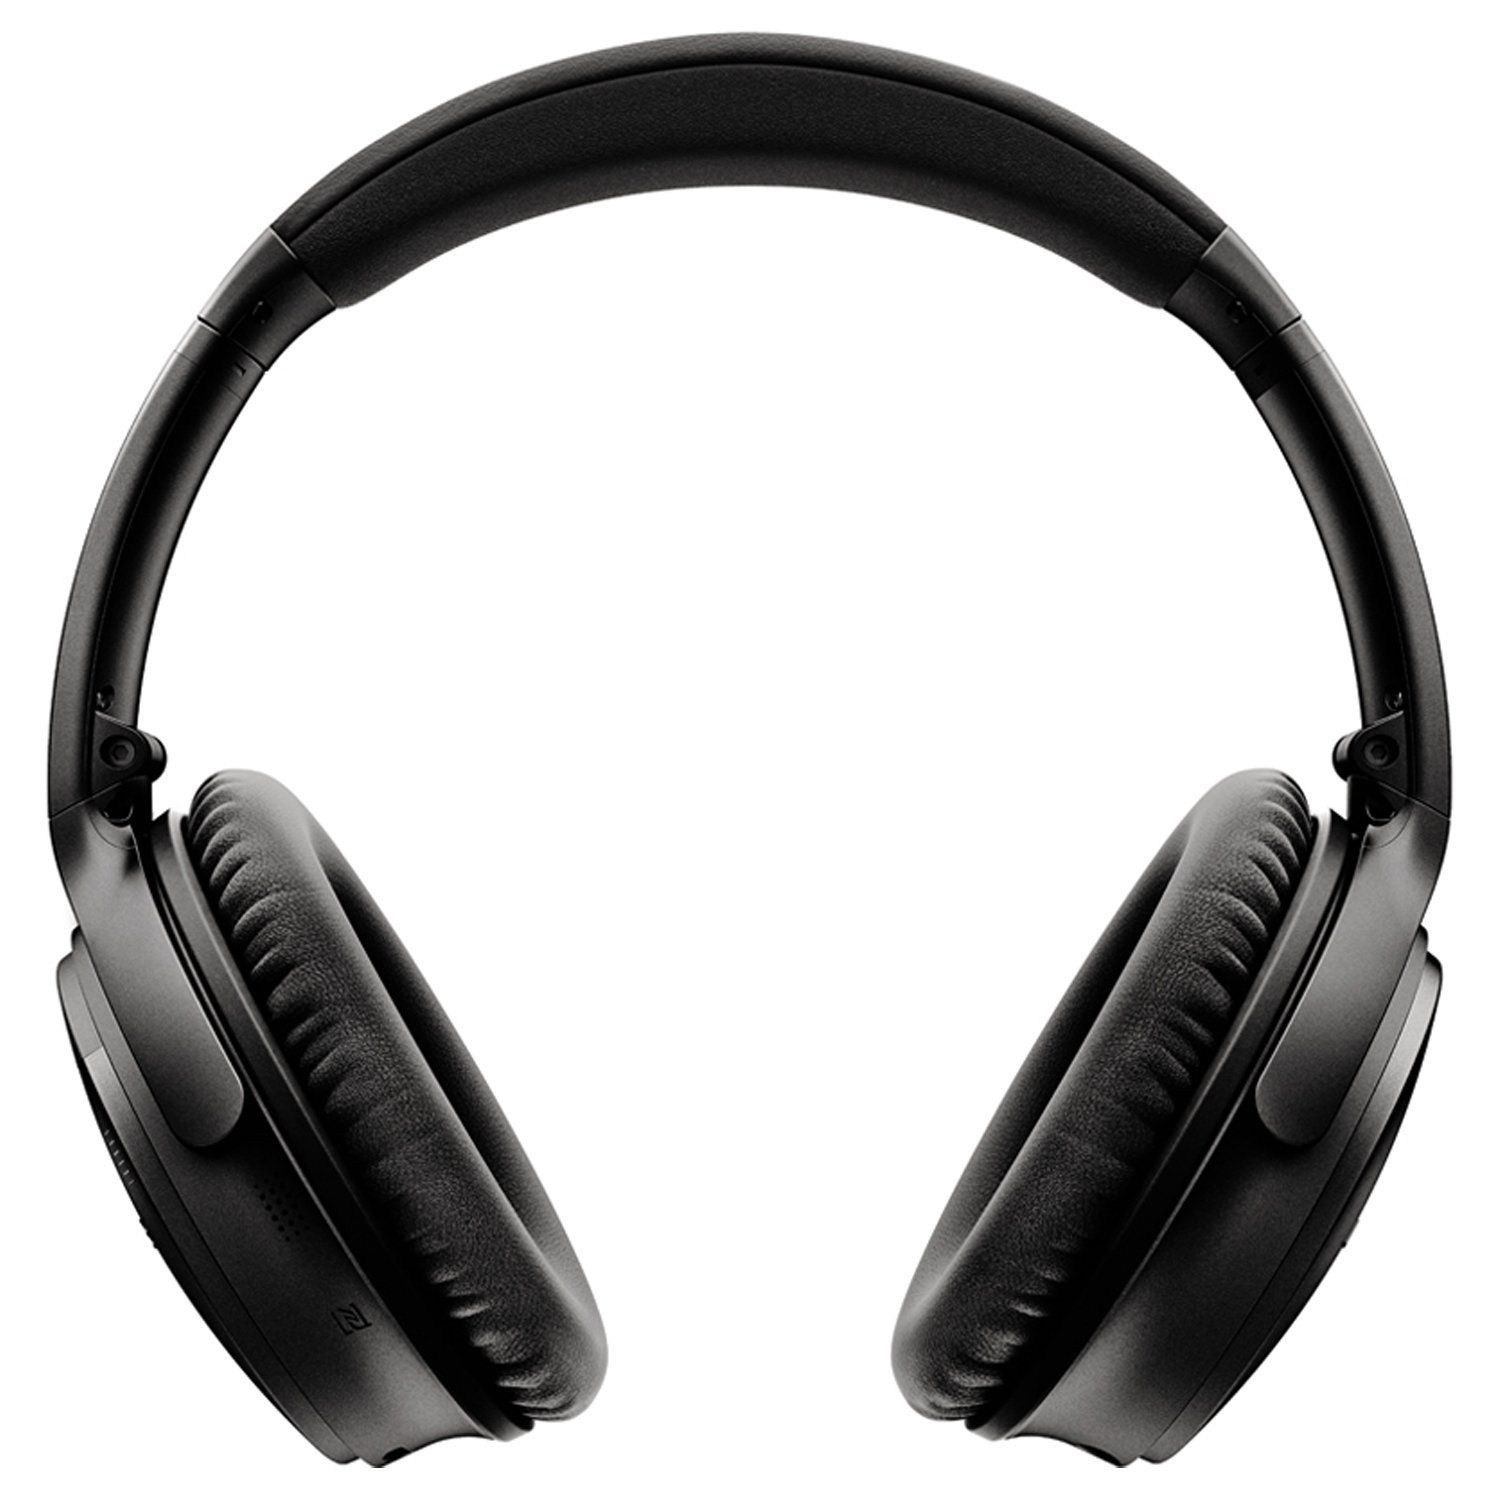 bose quietcomfort 35 wireless headphones black buy bose quietcomfort 35 wireless headphones